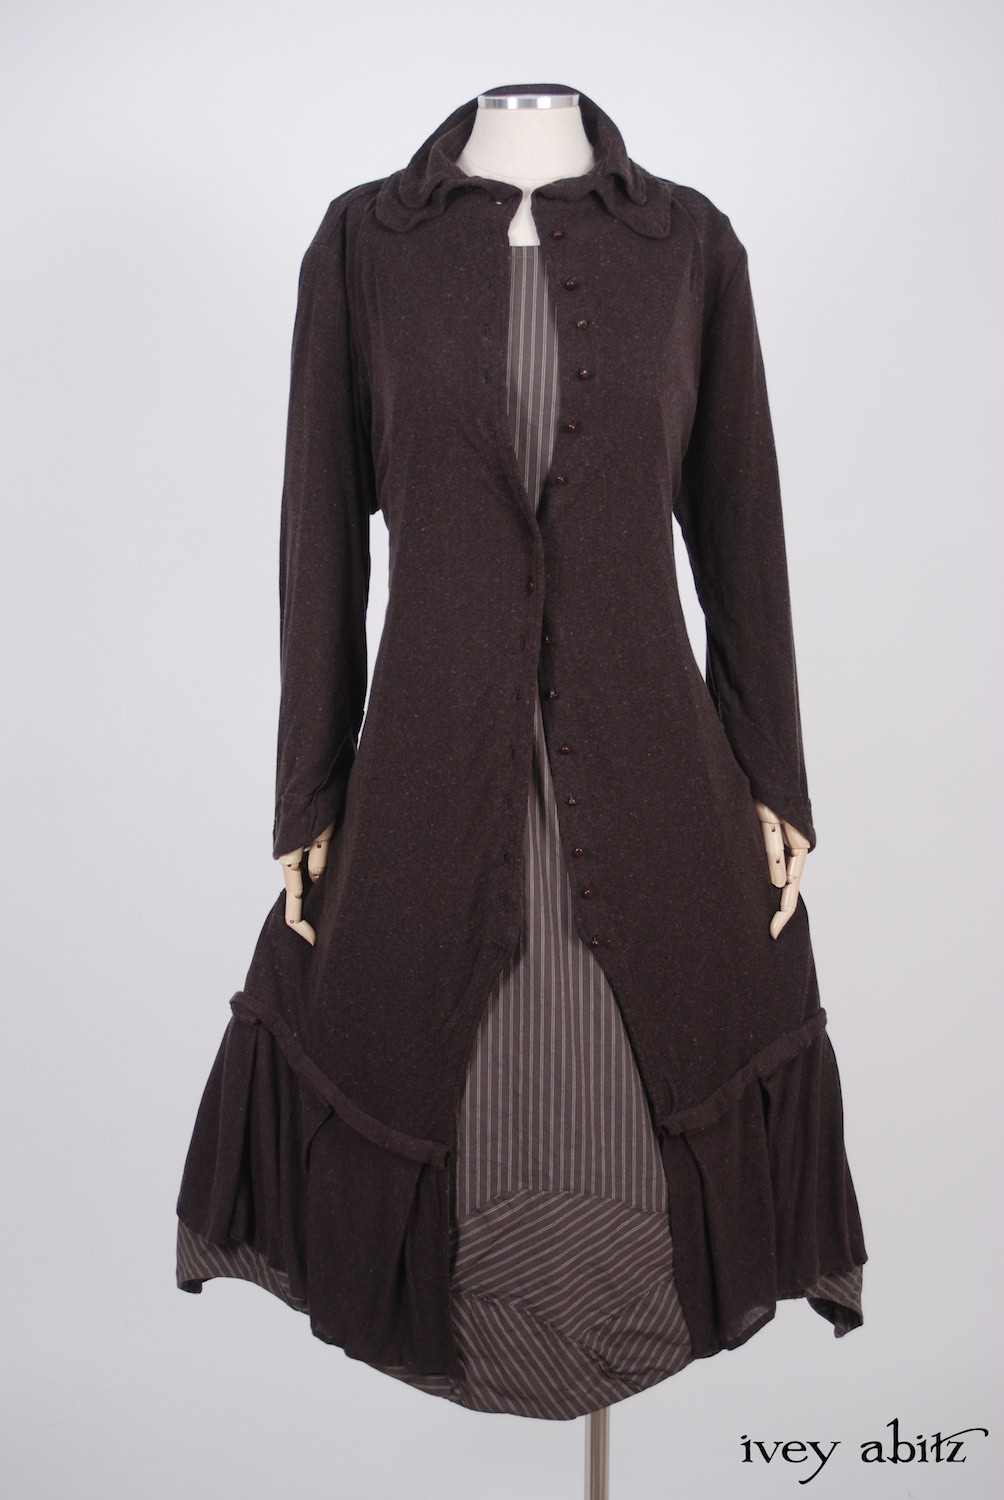 Ivey Abitz - Inglenook Duster Coat in Plumseed Mottled Knit  - Grasmere Frock in Feather Brown Striped Stretchy Cotton, High Water Length